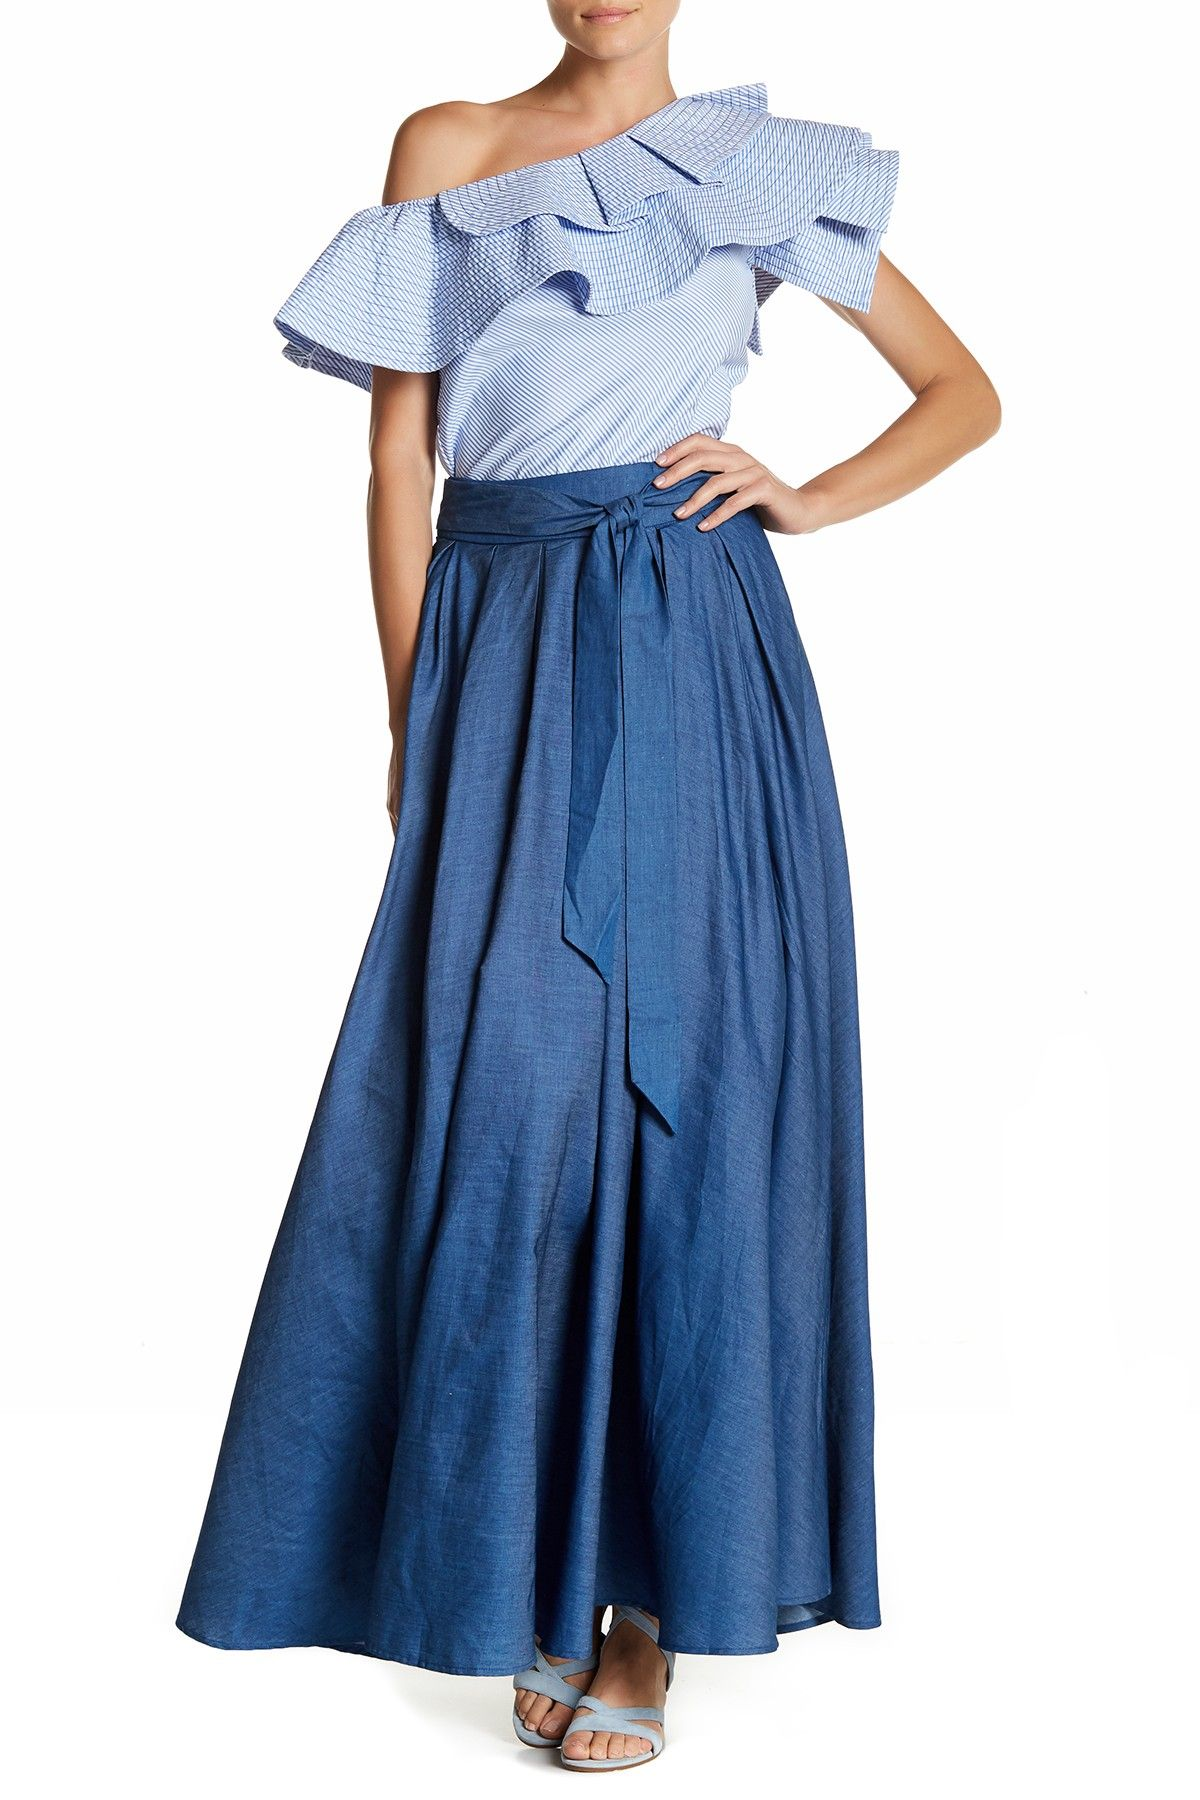 Denim maxi skirt by gracia on hautelook my style pinterest